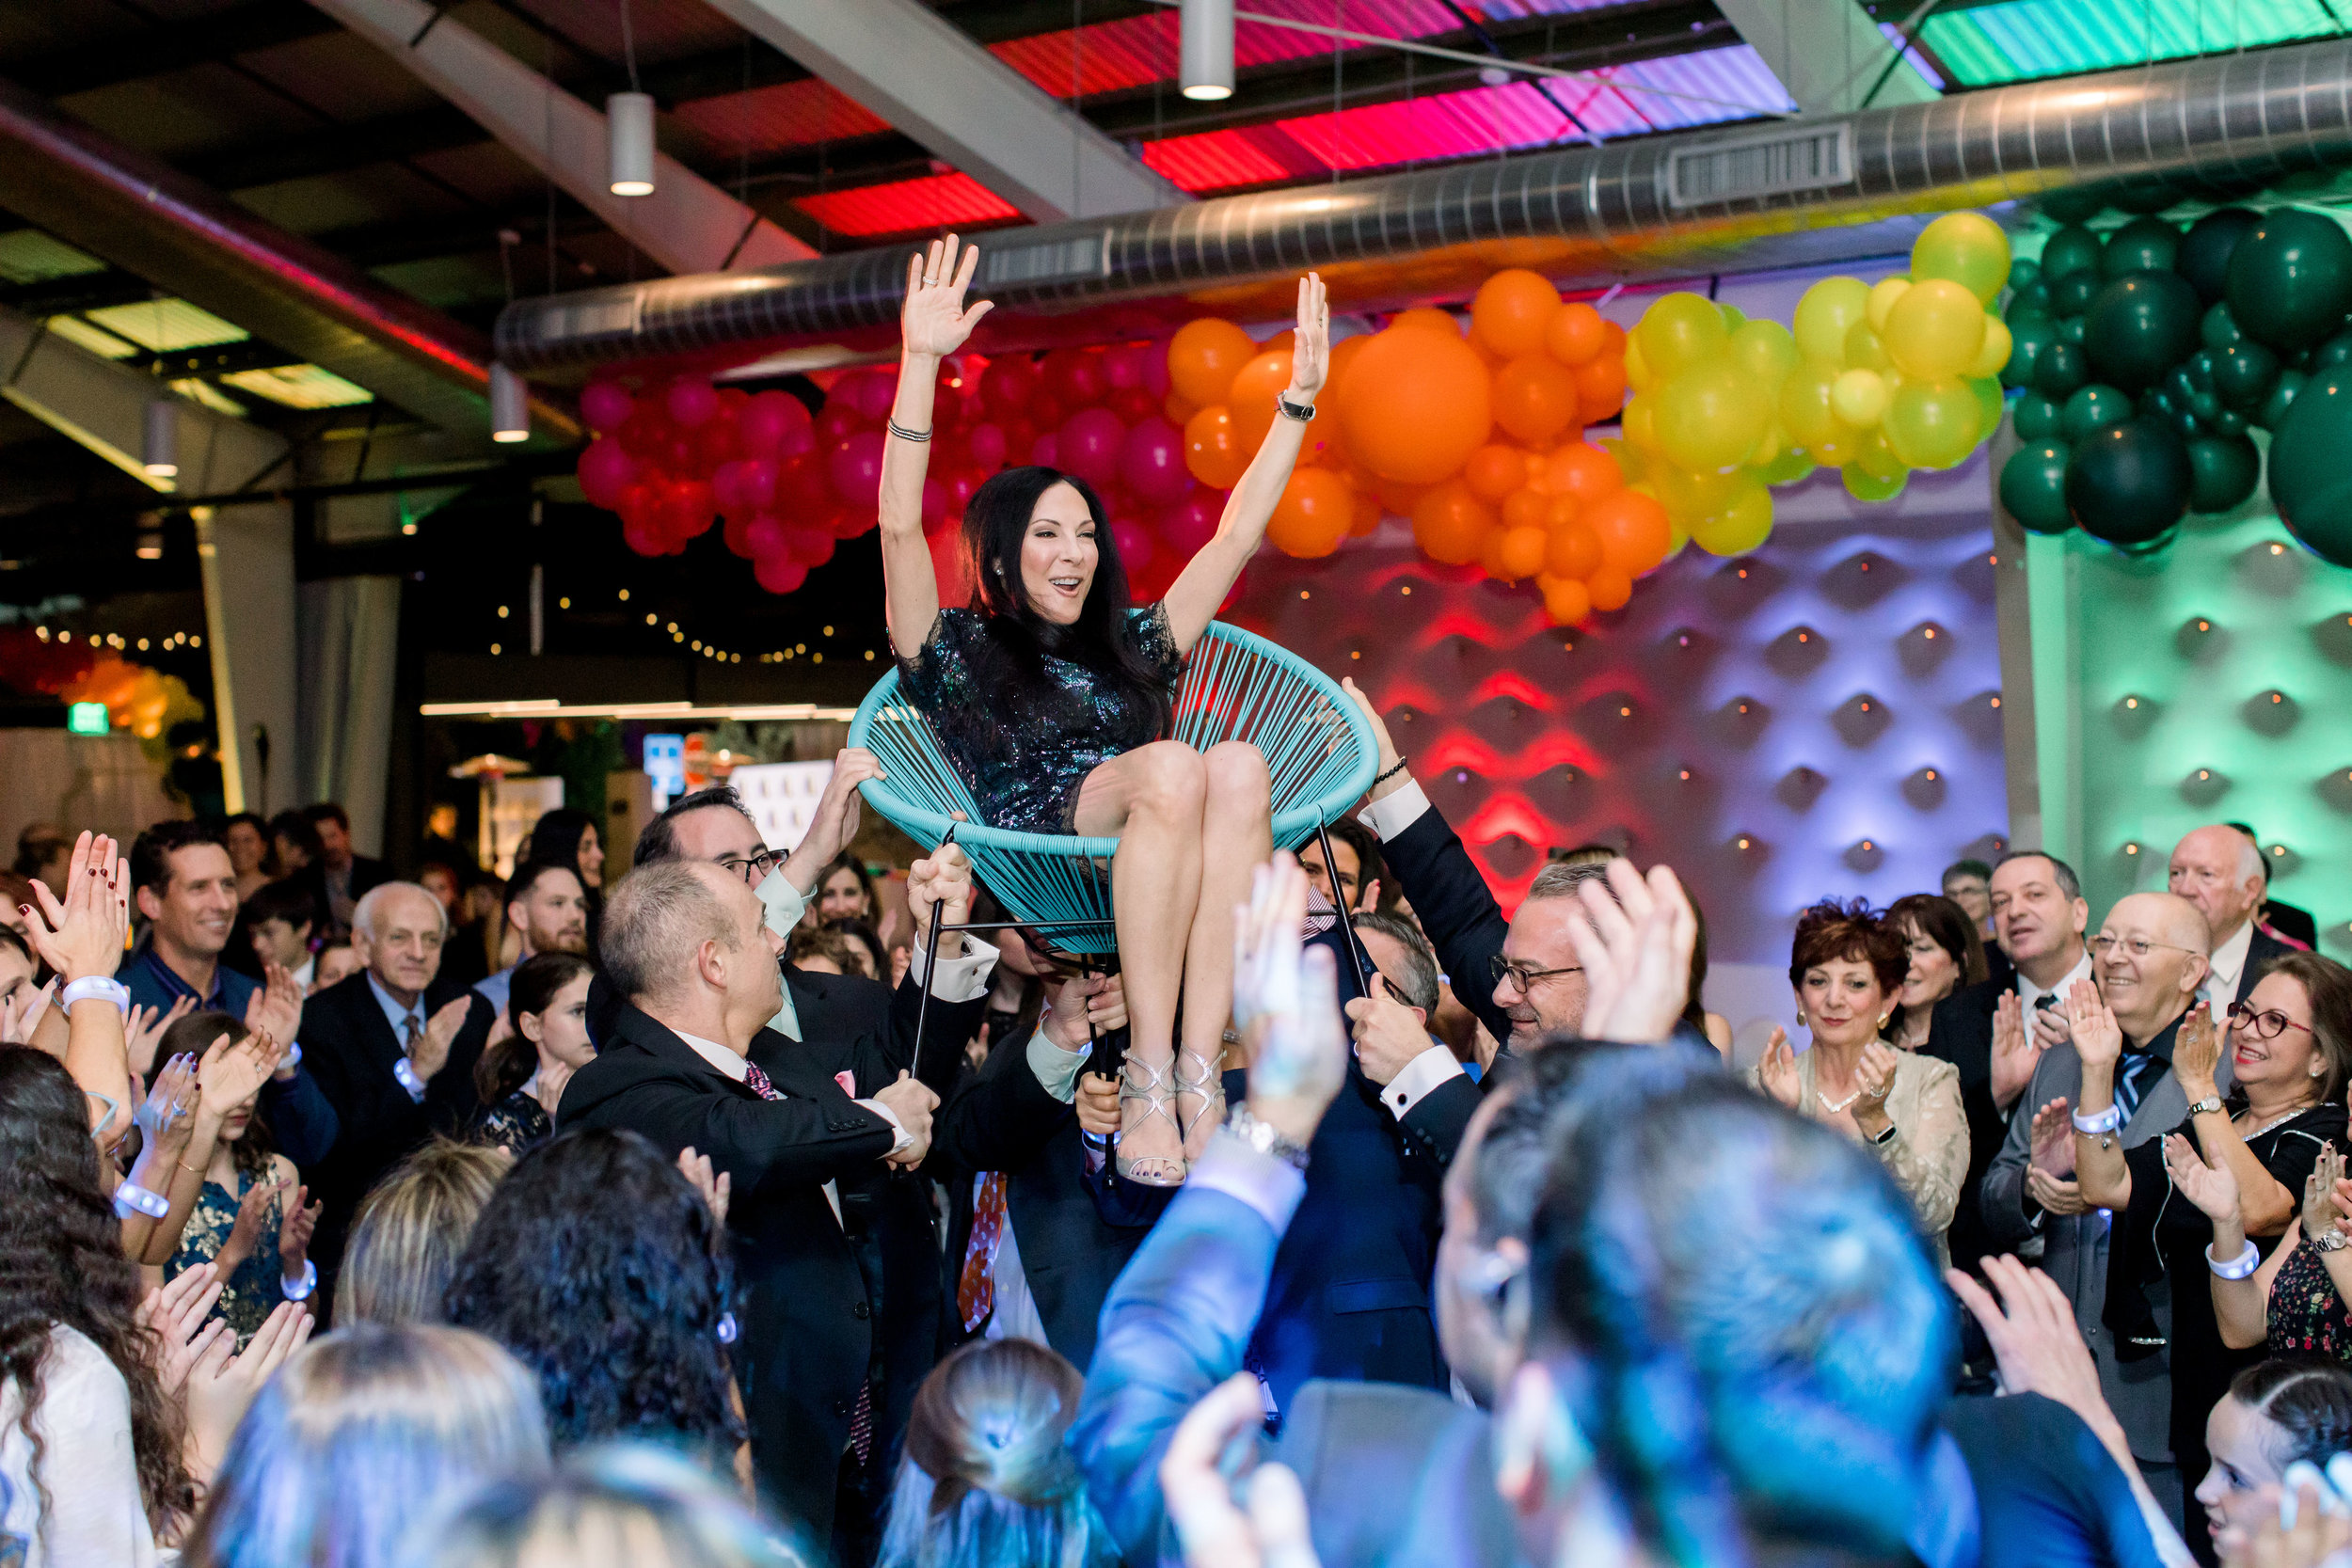 39 rainbow bat mitzvah mom lifted in chair hora dance tradition bat mitzvah dance party Life Design Events photos by Stephanie Heymann Photography.jpg